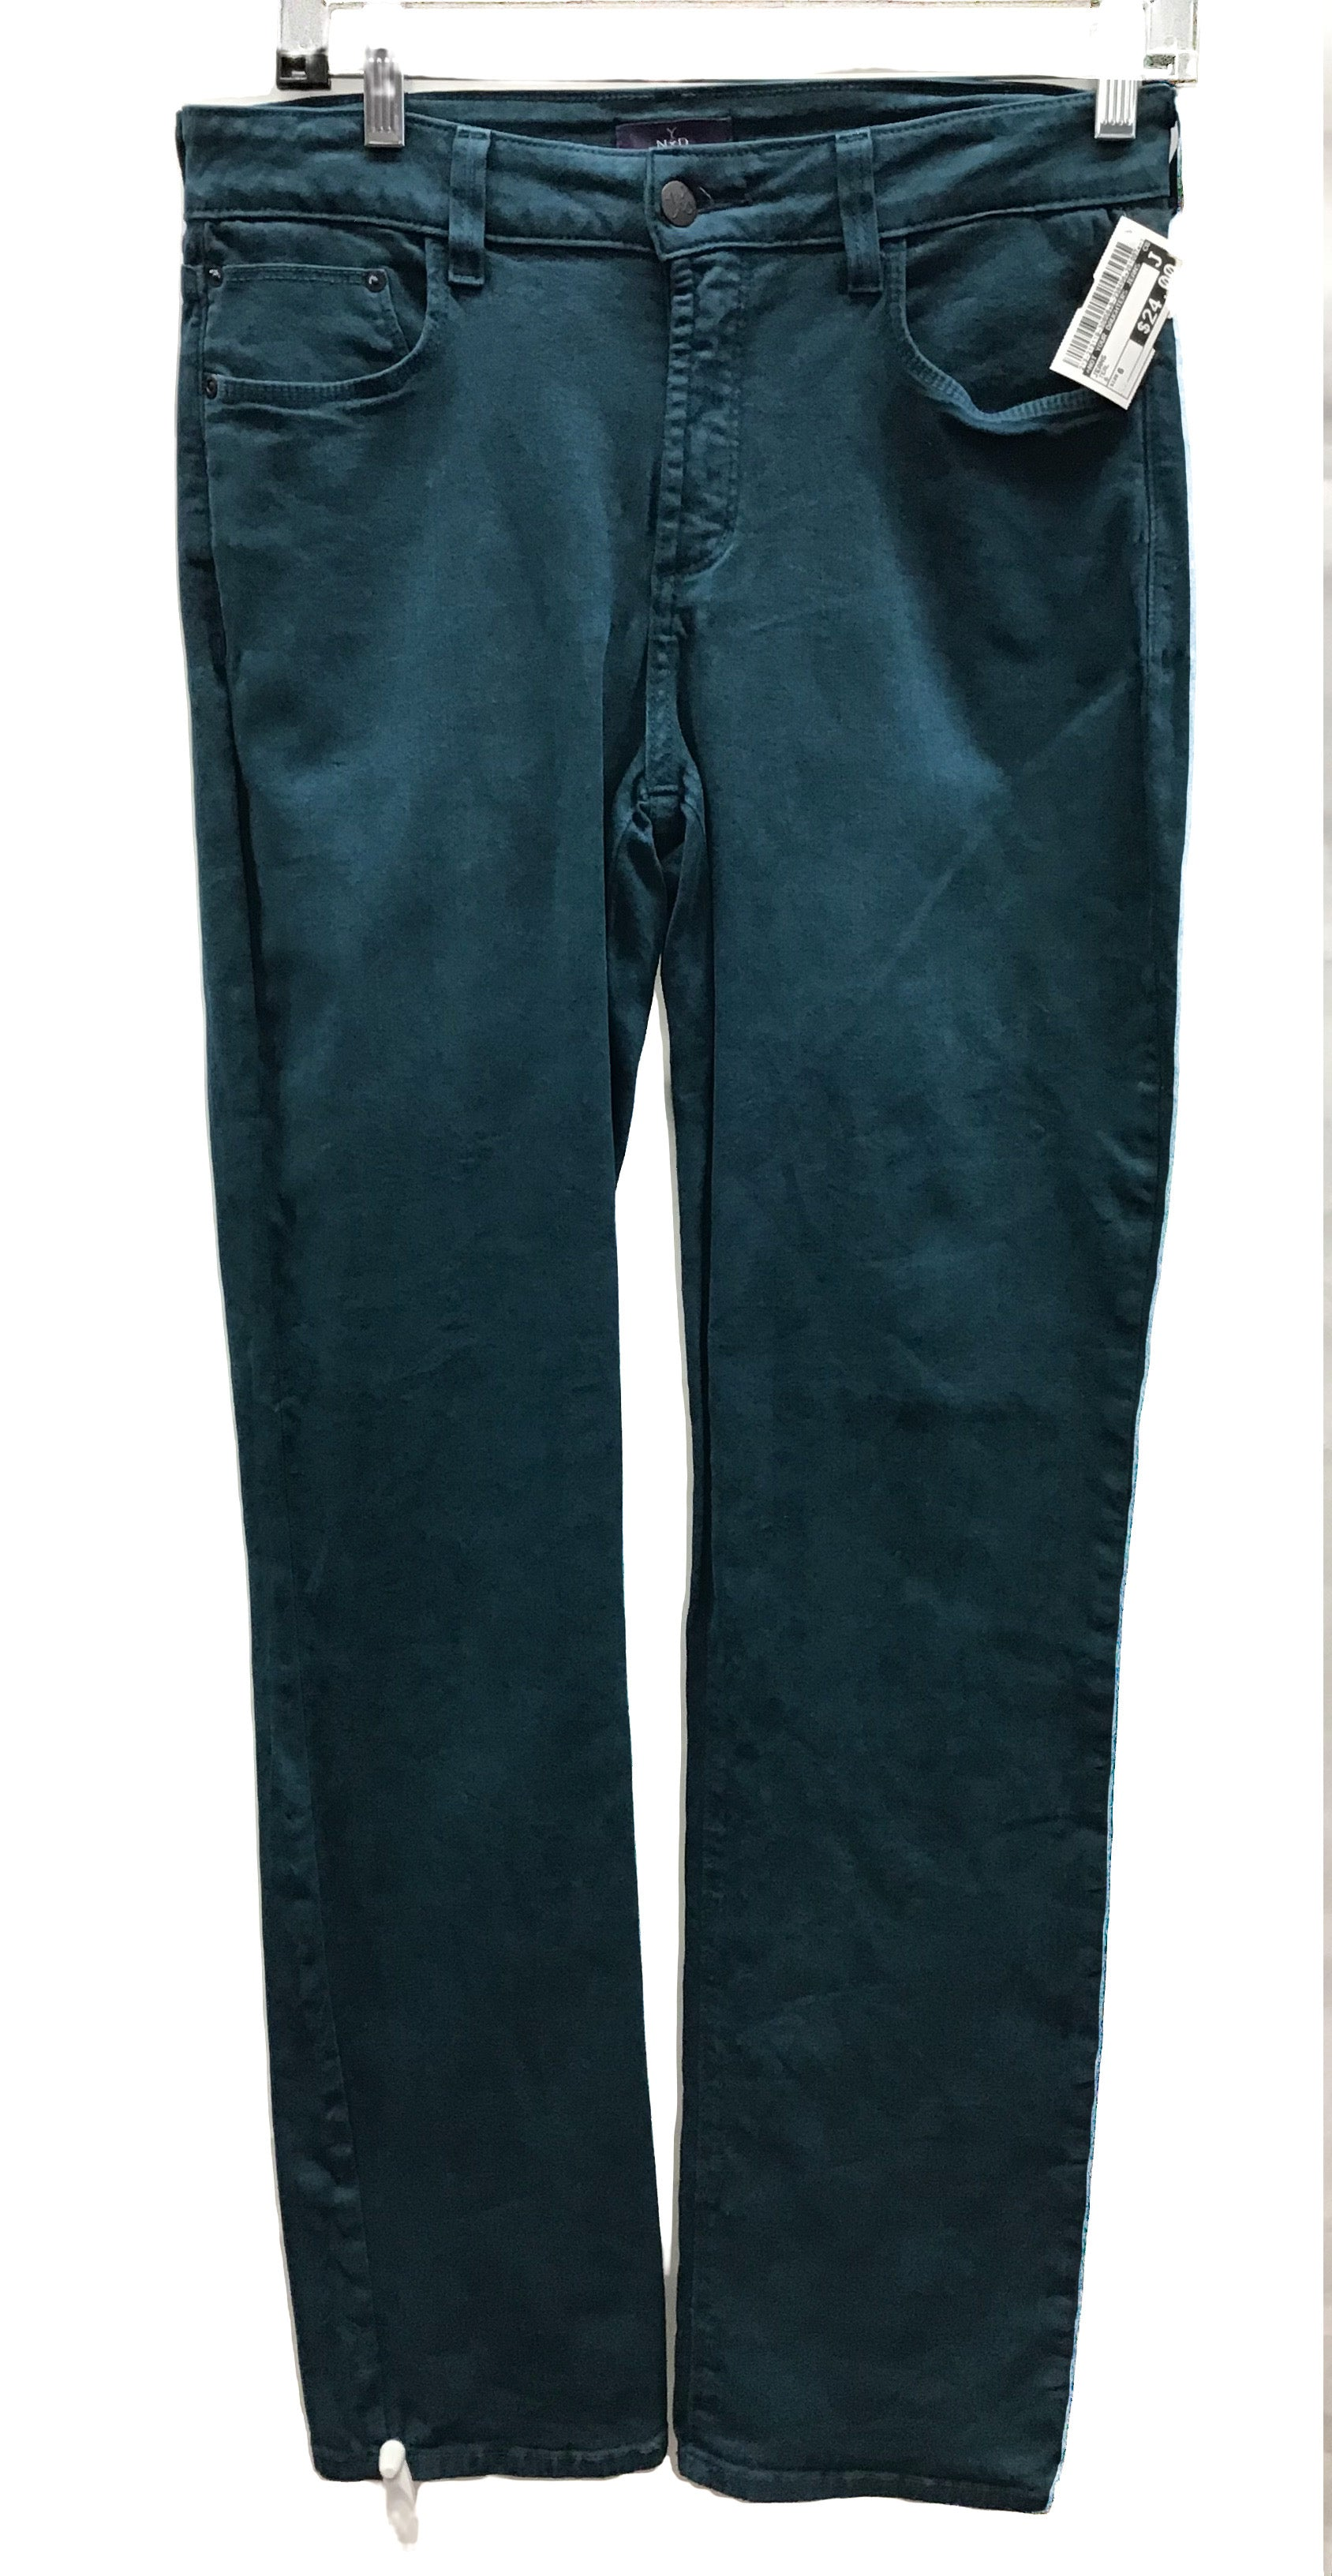 Primary Photo - BRAND: NOT YOUR DAUGHTERS JEANS <BR>STYLE: JEANS <BR>COLOR: TEAL <BR>SIZE: 6 <BR>SKU: 213-213118-30858